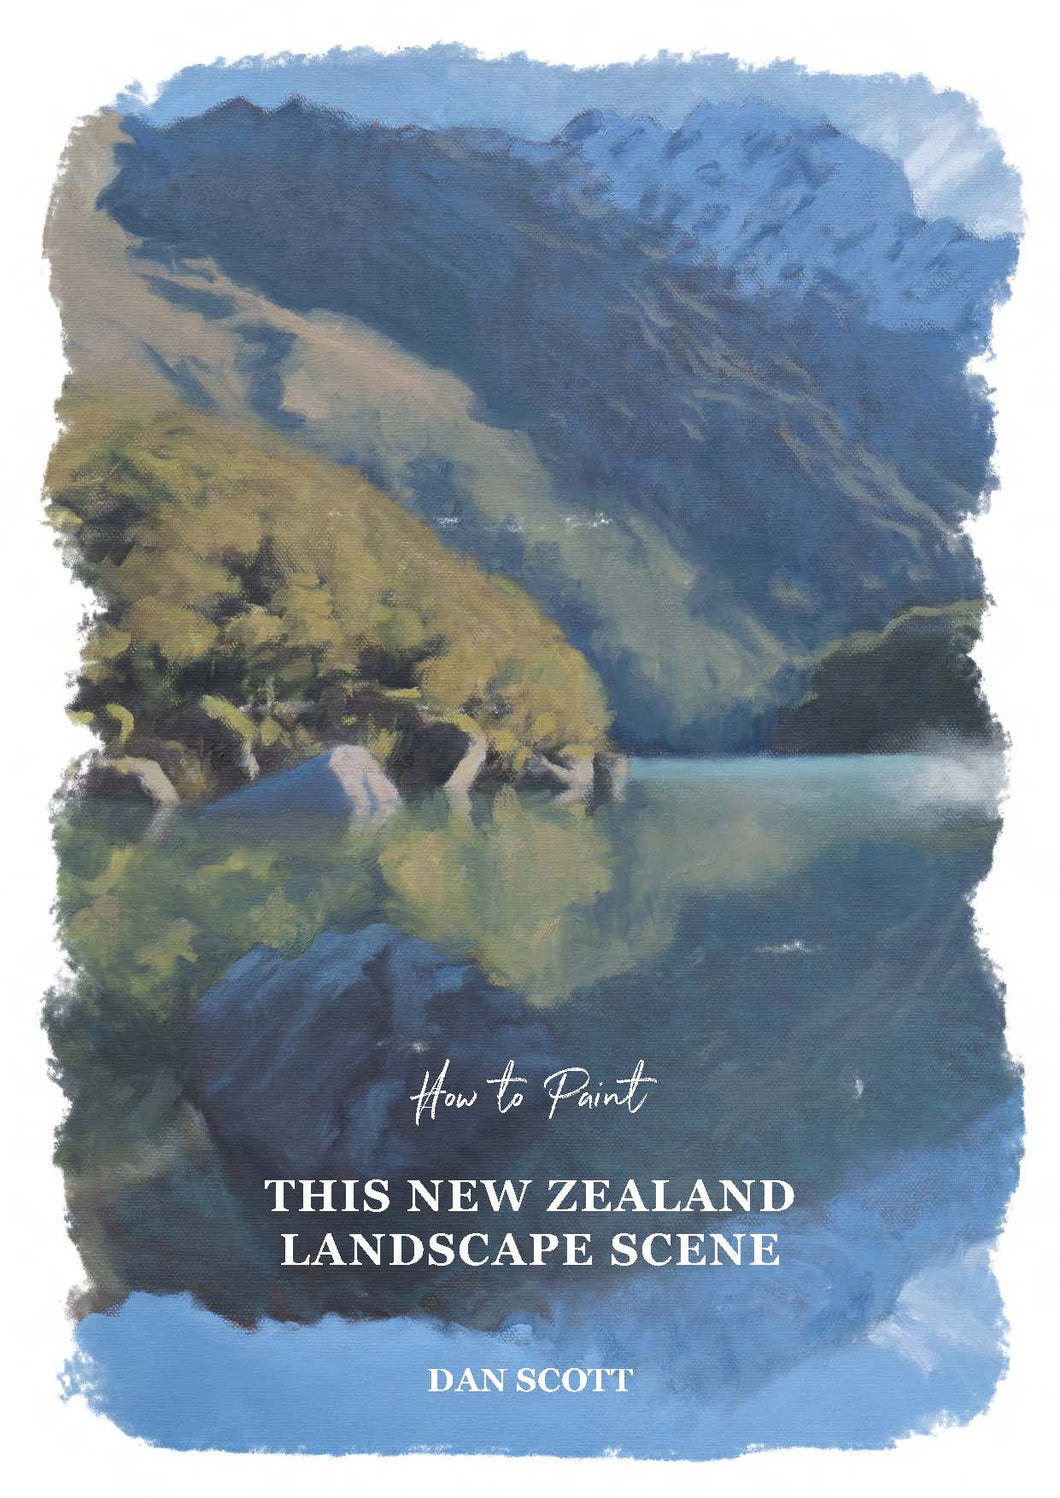 How to Paint This New Zealand Landscape Scene